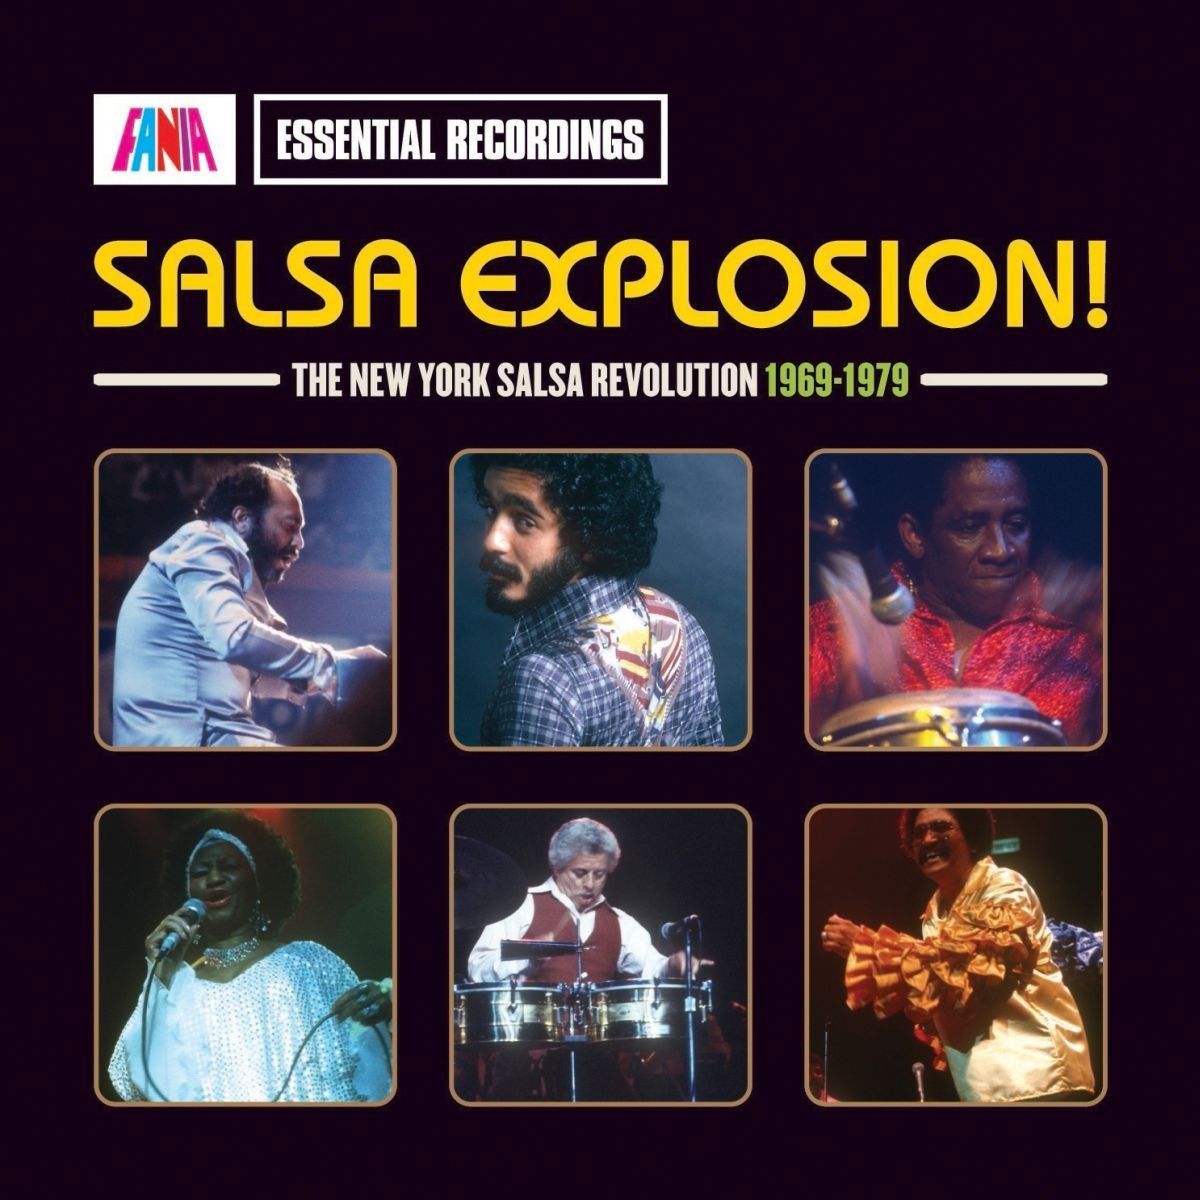 FANIA ESSENTIAL RECORDINGS SALSA EXPLOSION: THE SALSA REVOLUTION 1969-1979